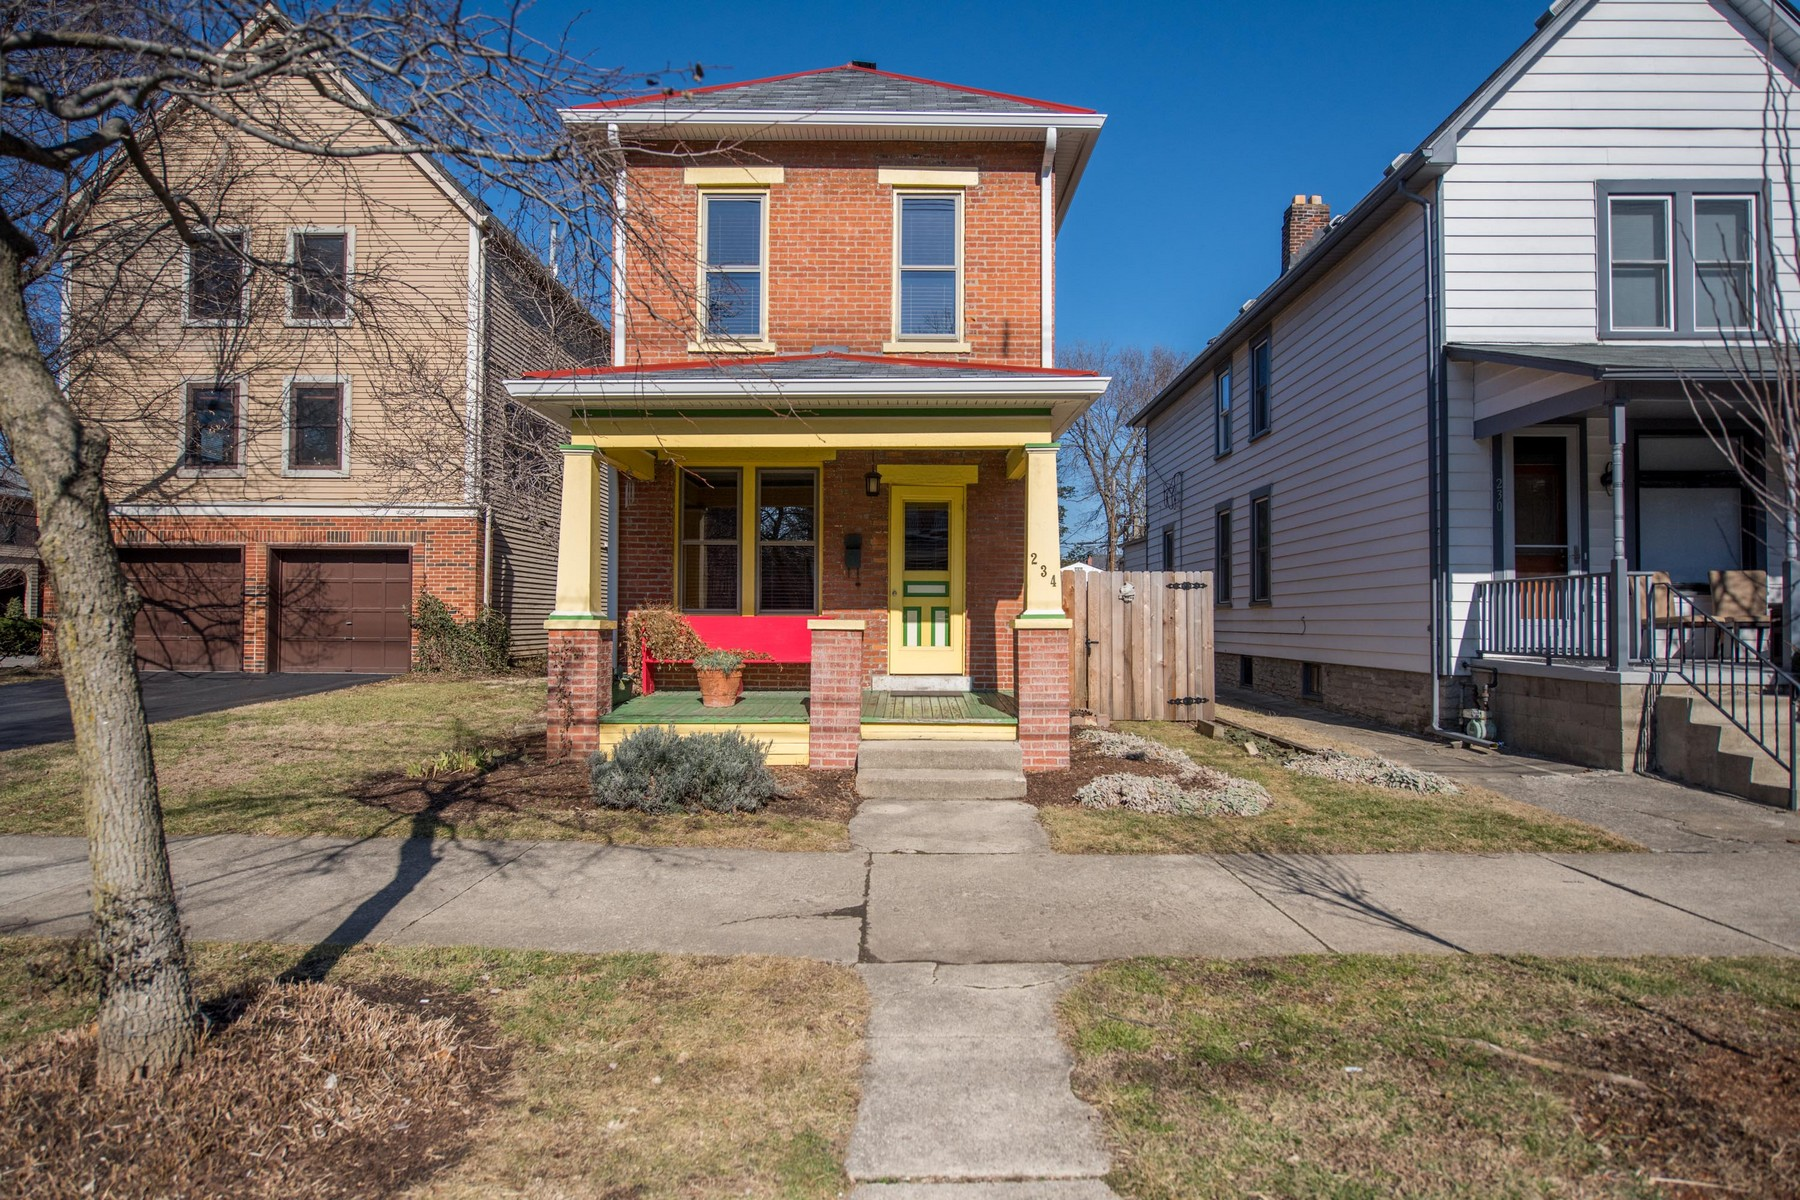 Property For Sale at 234 W. 1ST Avenue